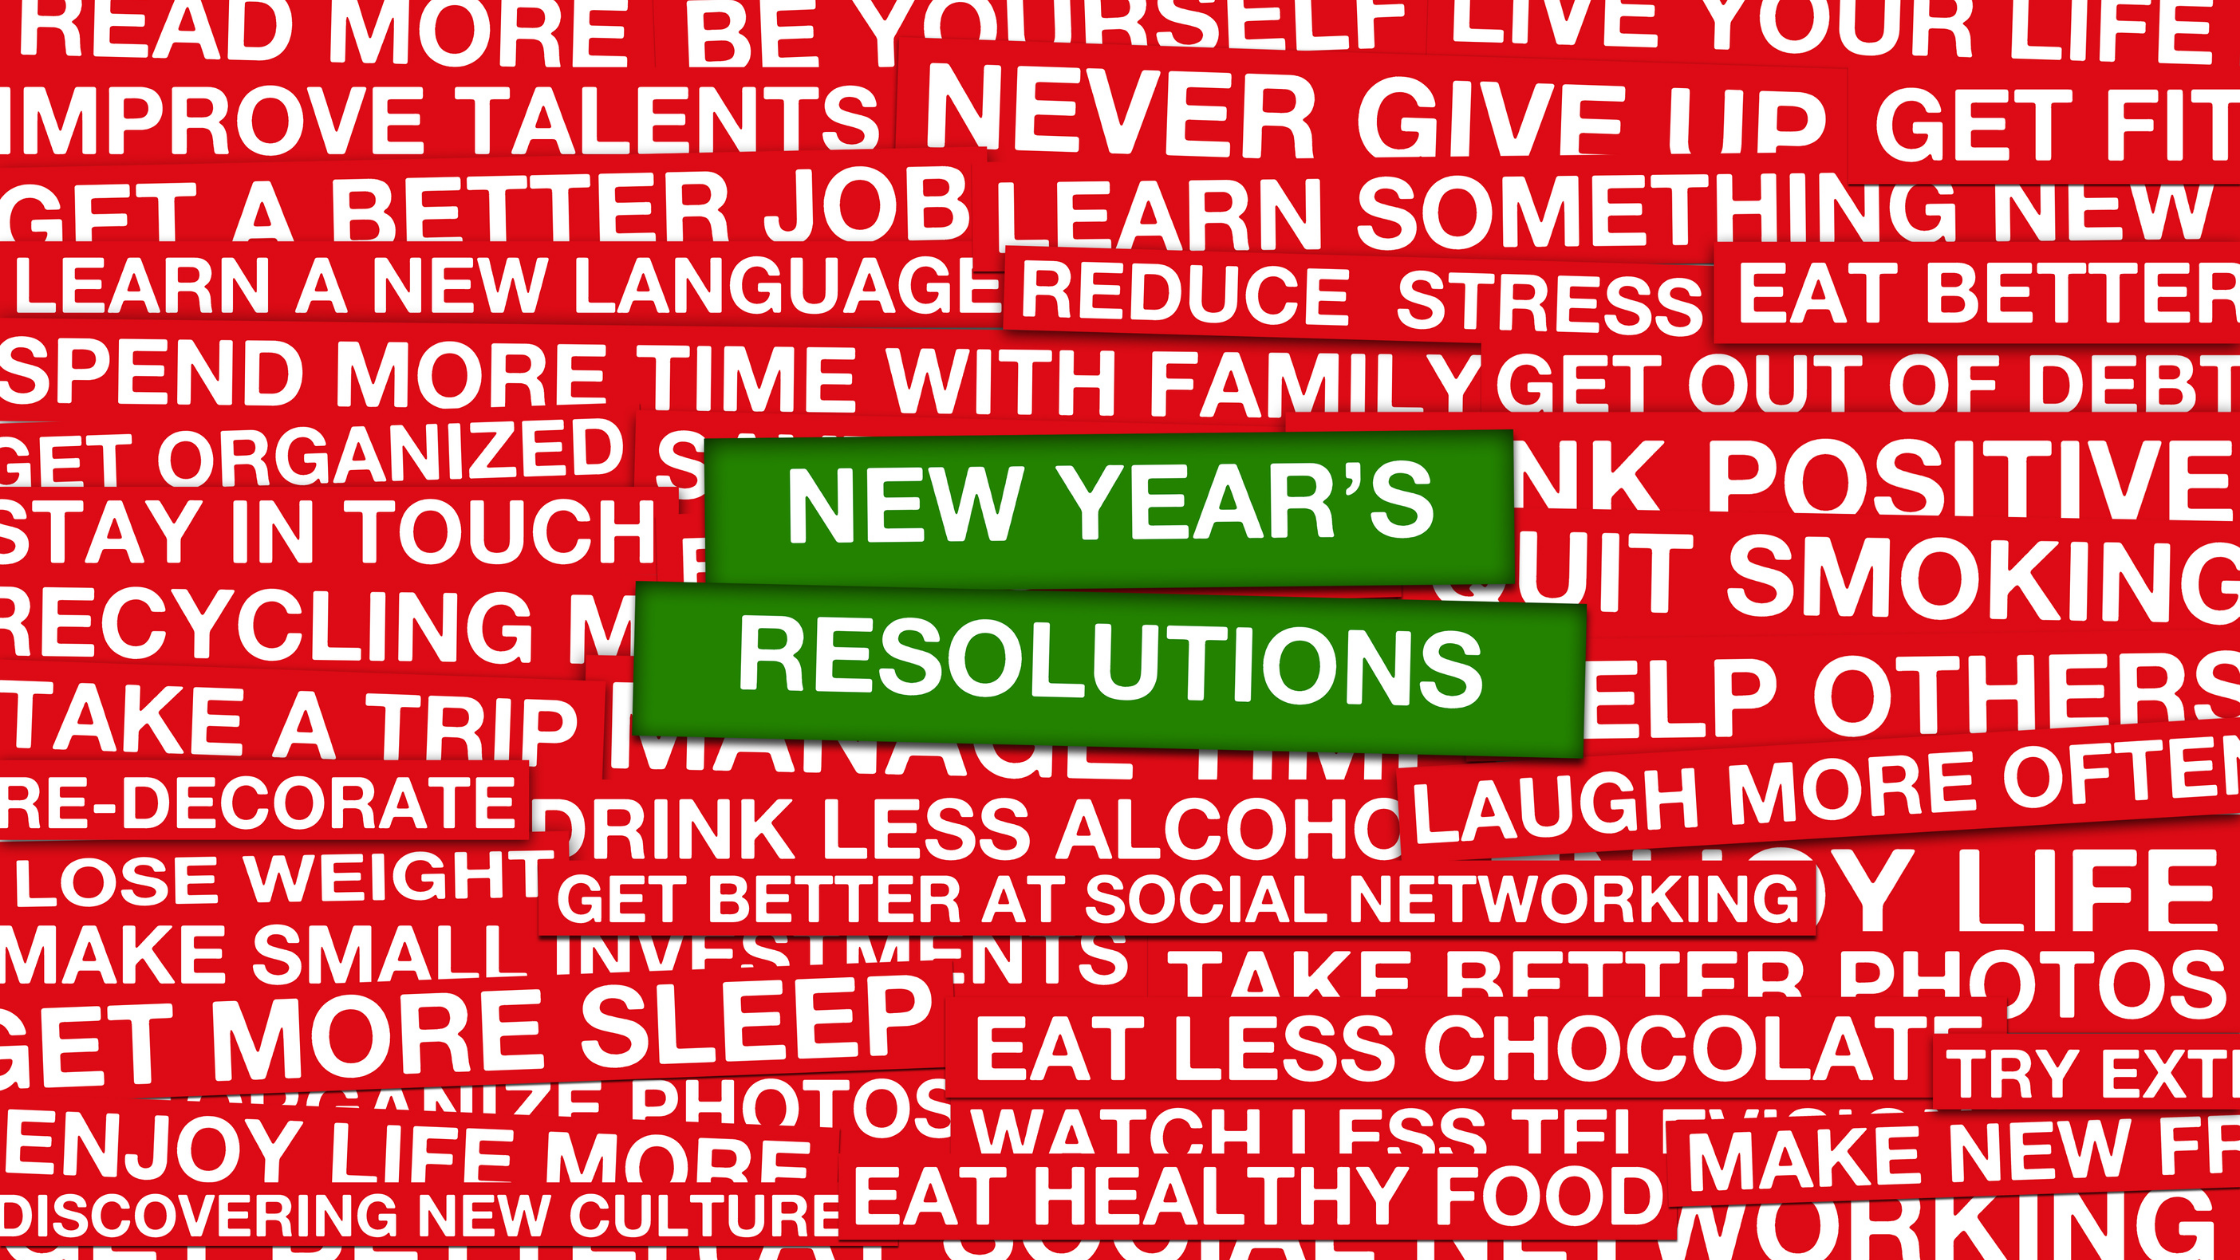 Thumbnail for 5 Simple Tricks to Stick to your New Year's Resolutions